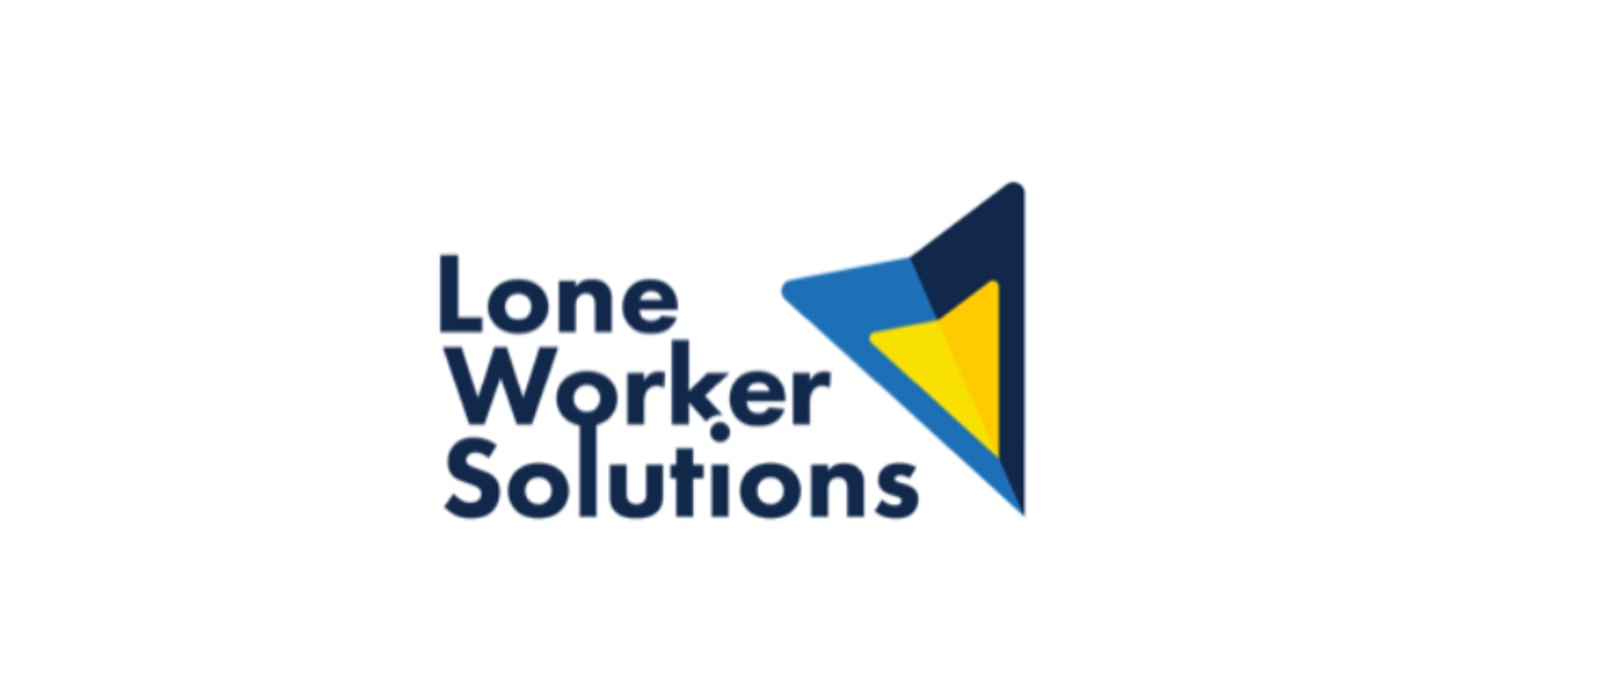 Lone Worker Solutions Safe Hub App